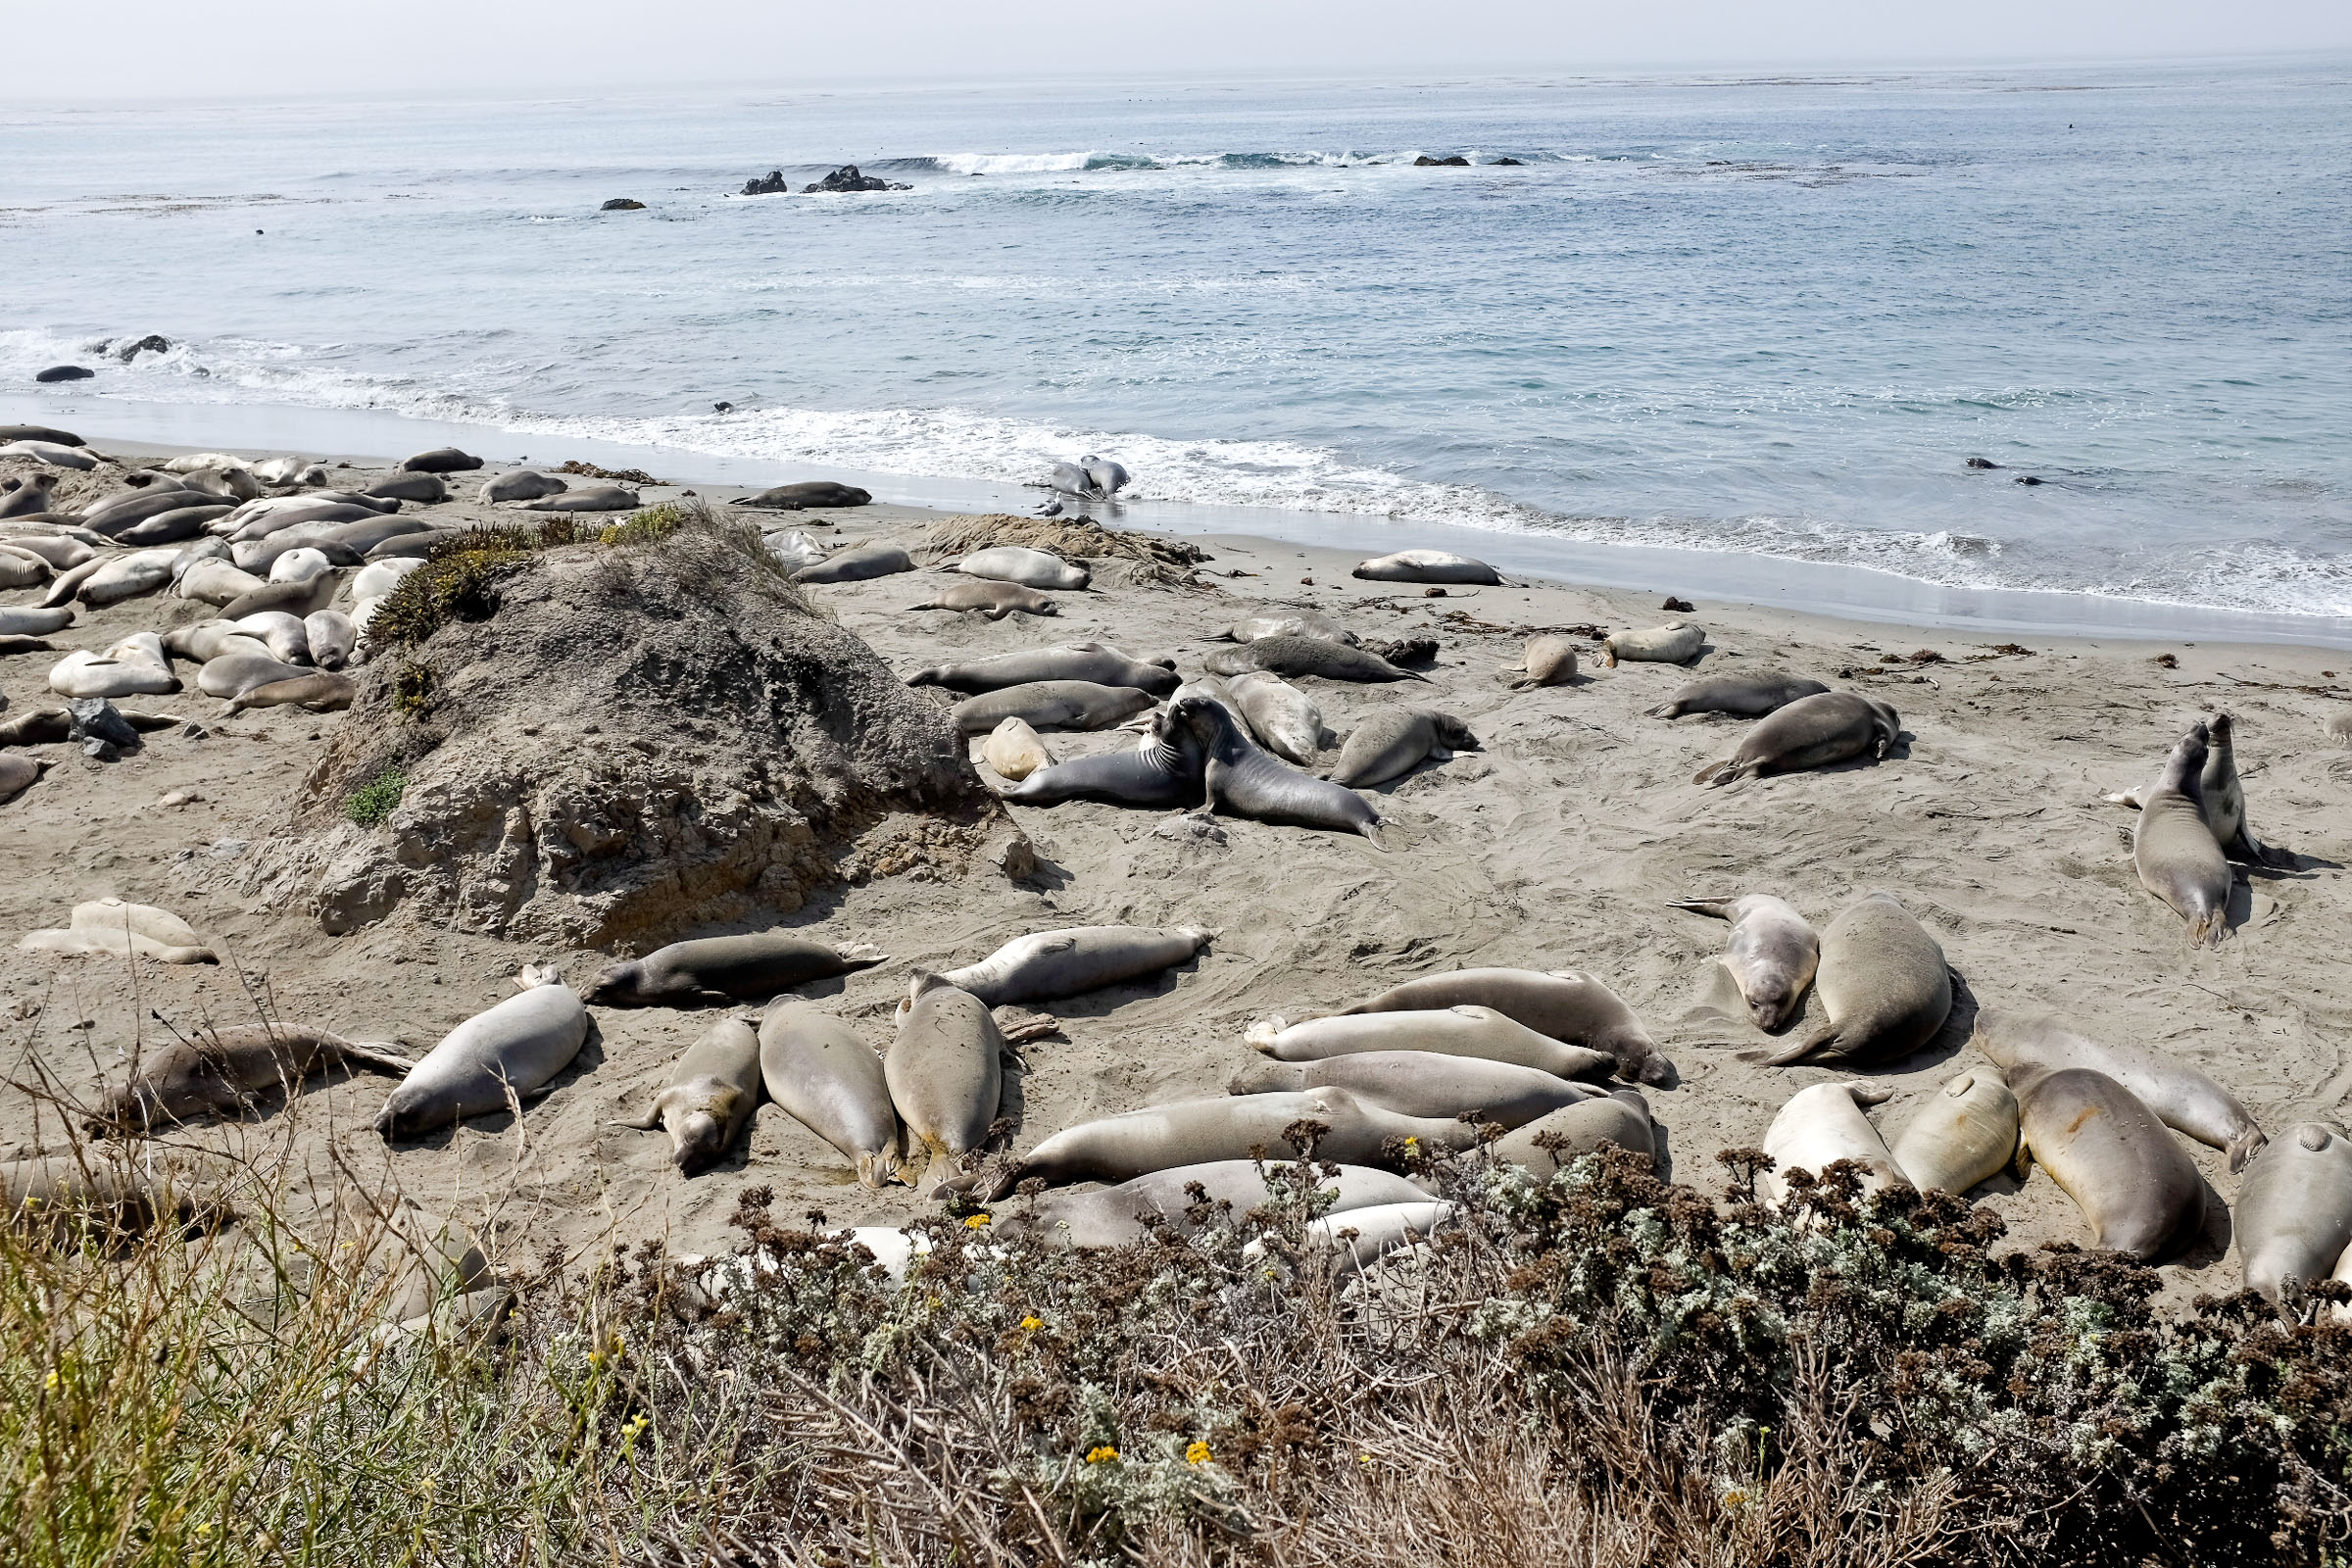 The elephant seal observatory